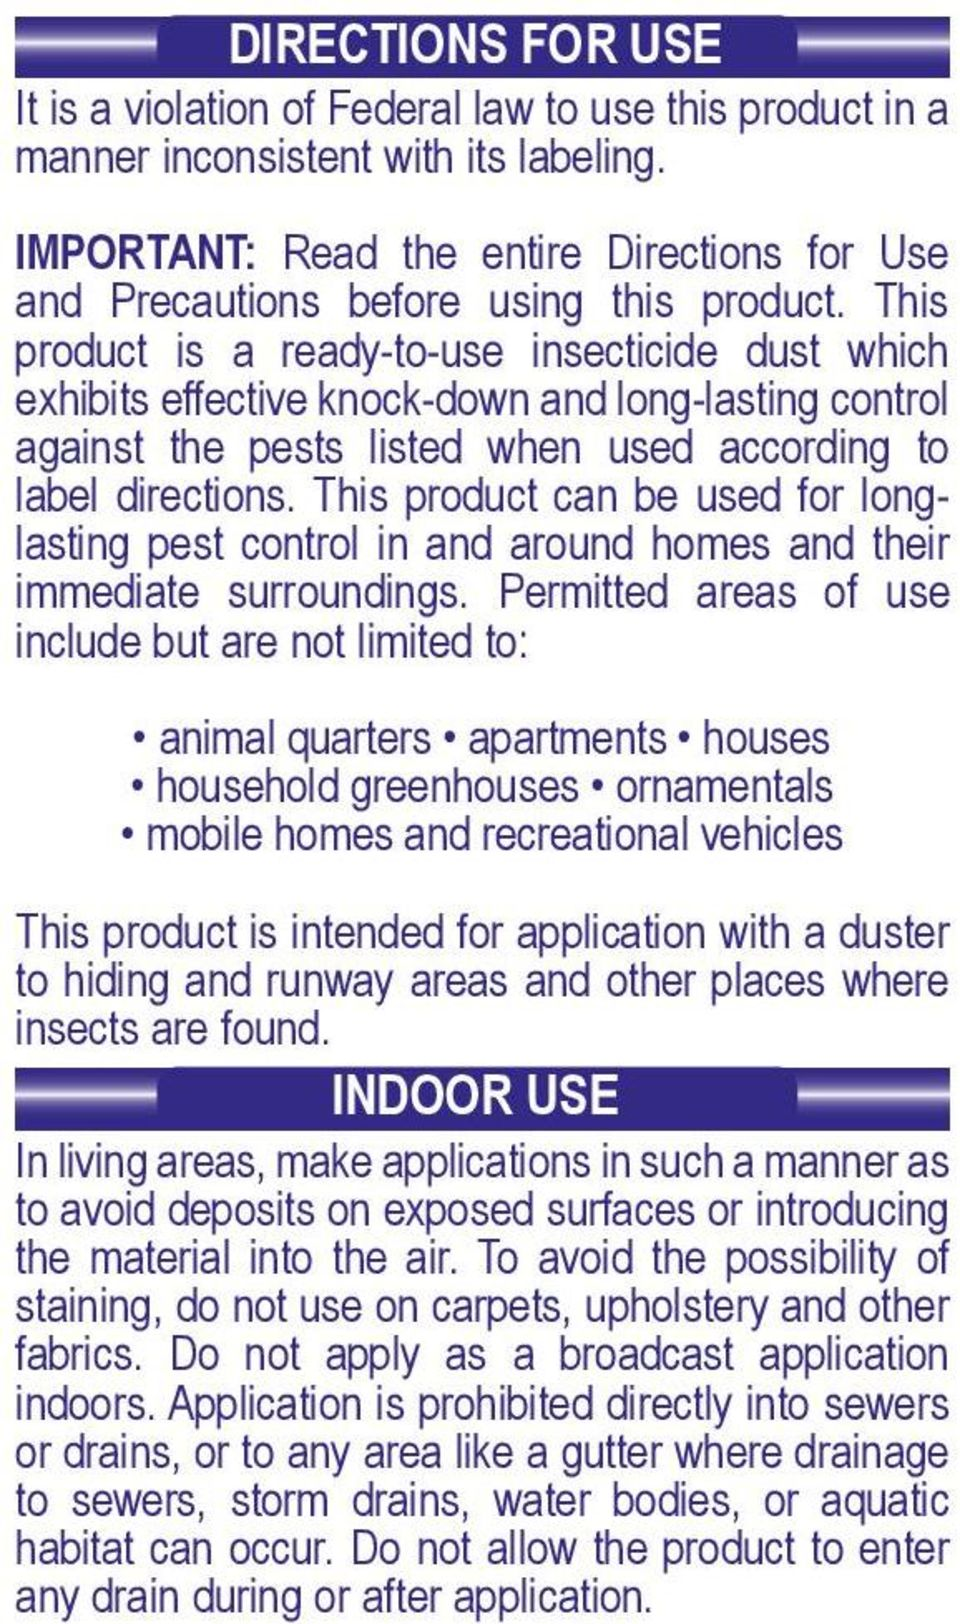 This product is a ready-to-use insecticide dust which exhibits effective knock-down and long-lasting control against the pests listed when used according to label directions.